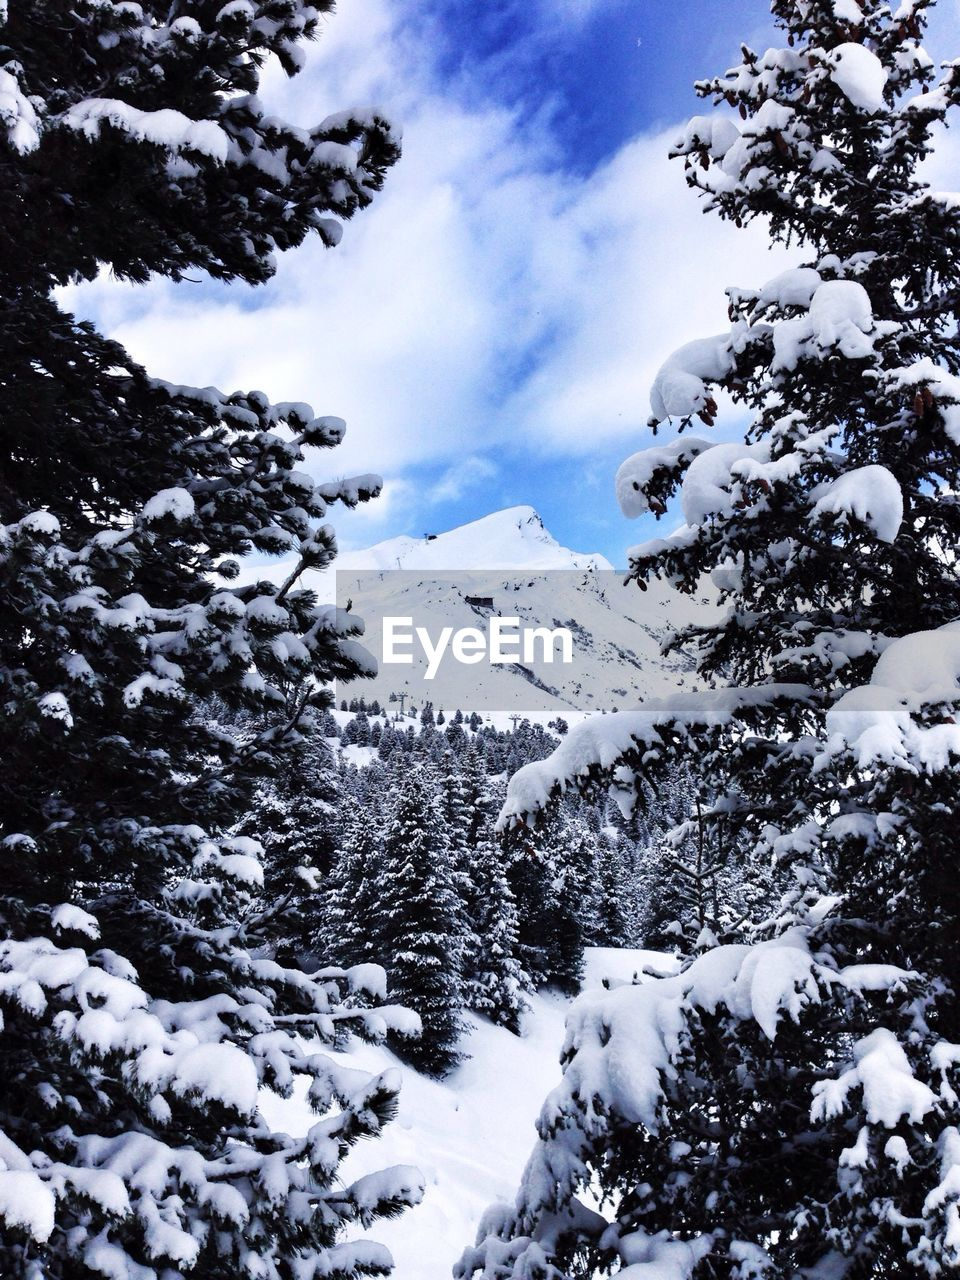 Trees in snow covered landscape